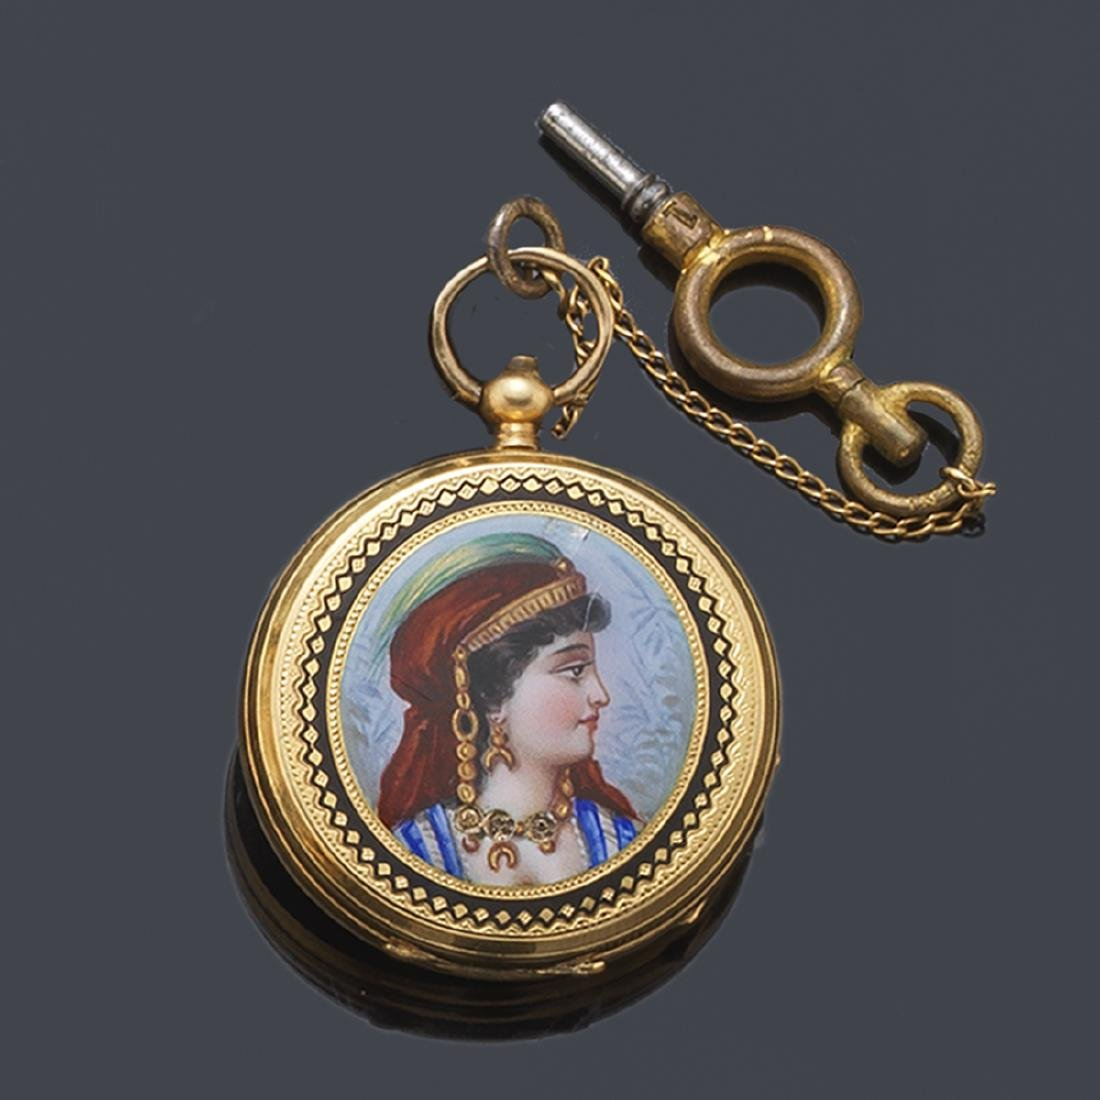 BAUTTE Geneve. Brooch watch in 18K yellow gold and